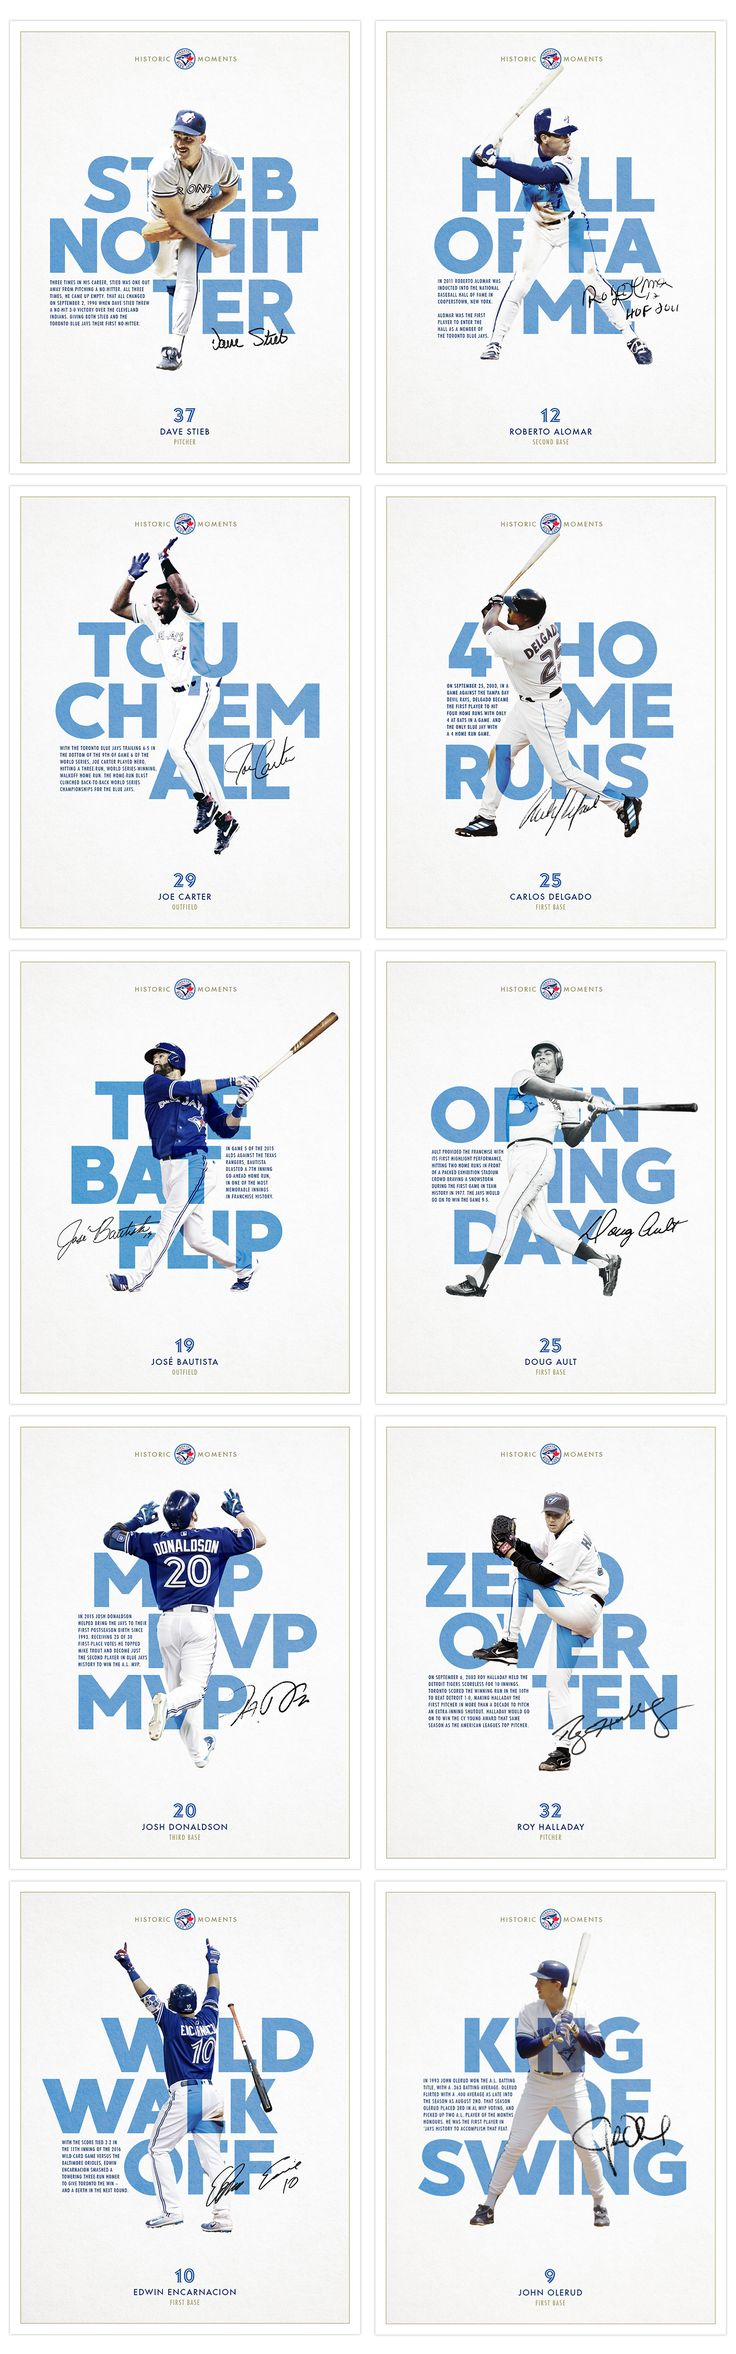 Historic Blue Jays Moments - Poster Series on Behance